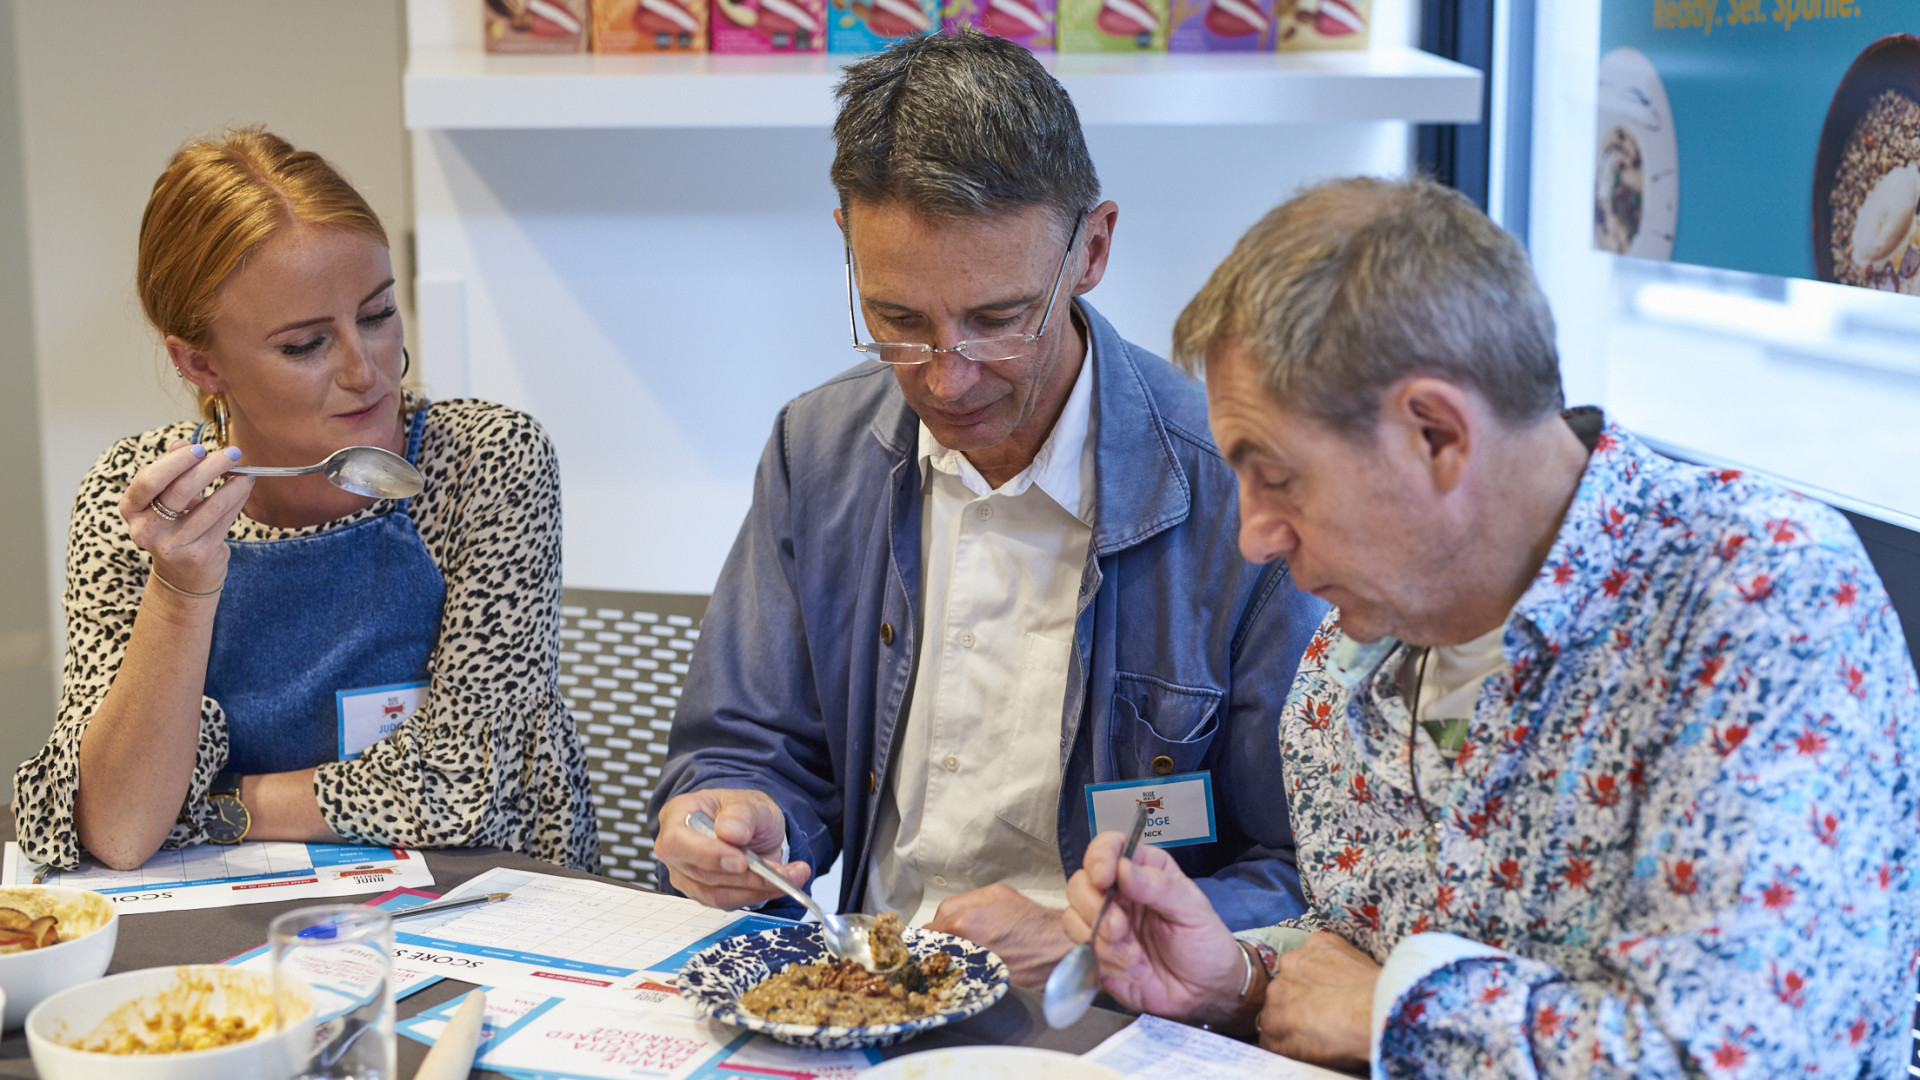 Judges at the Rude Health Porridge Championships 2018 taste Foodism's entry